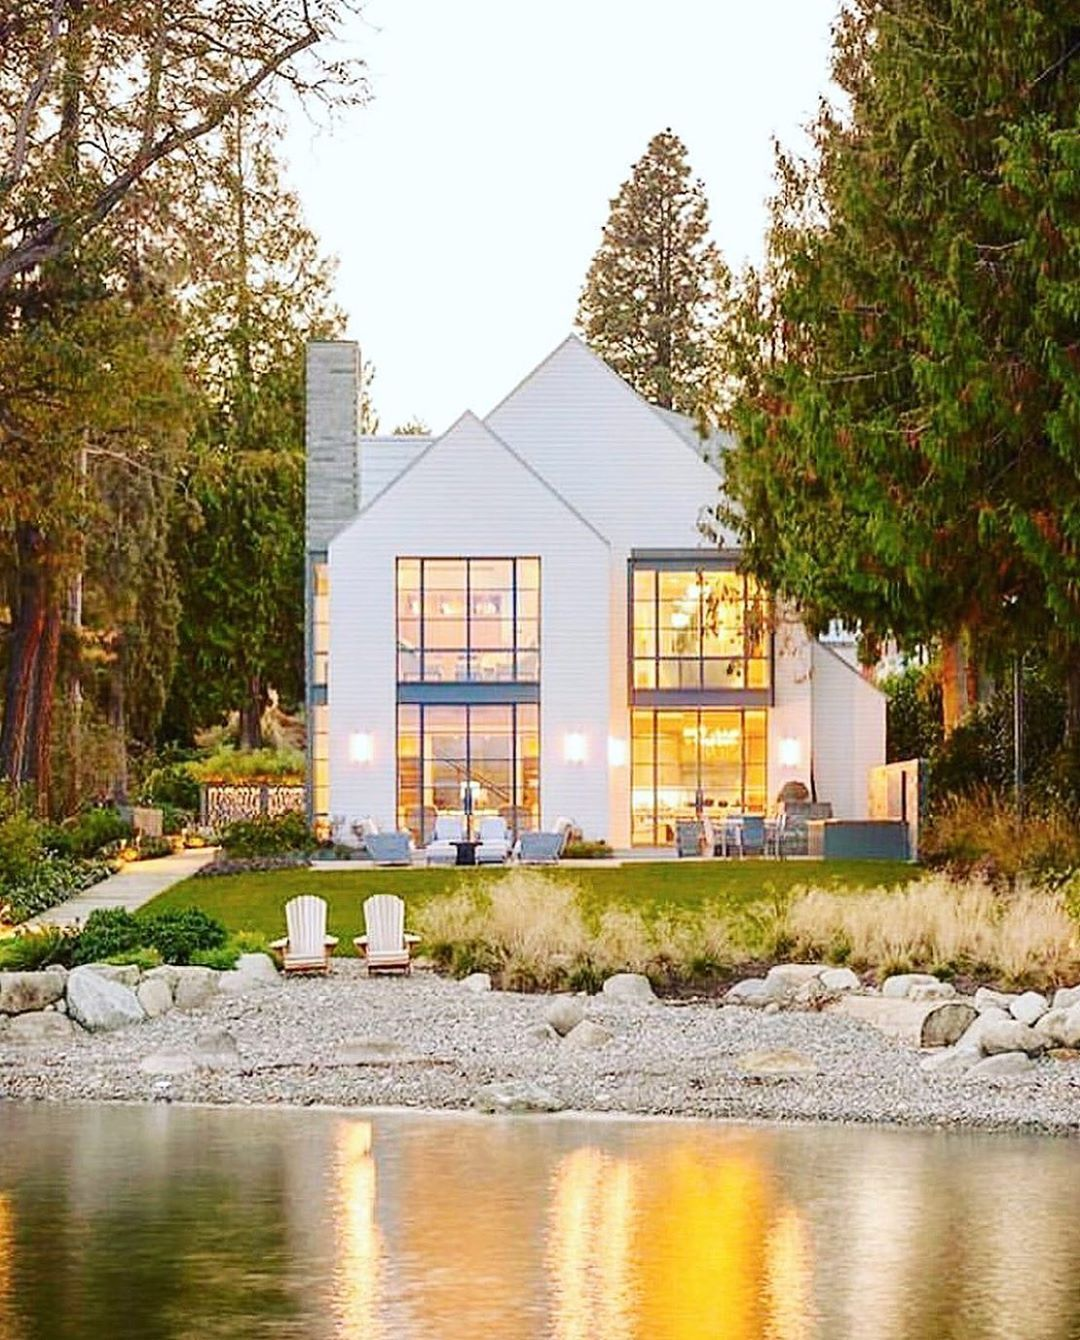 Sunset Magazine On Instagram This Stunning Washington Lake House Has Us Counting Down The Days Un Lake Houses Exterior Washington Lake House Waterfront Homes